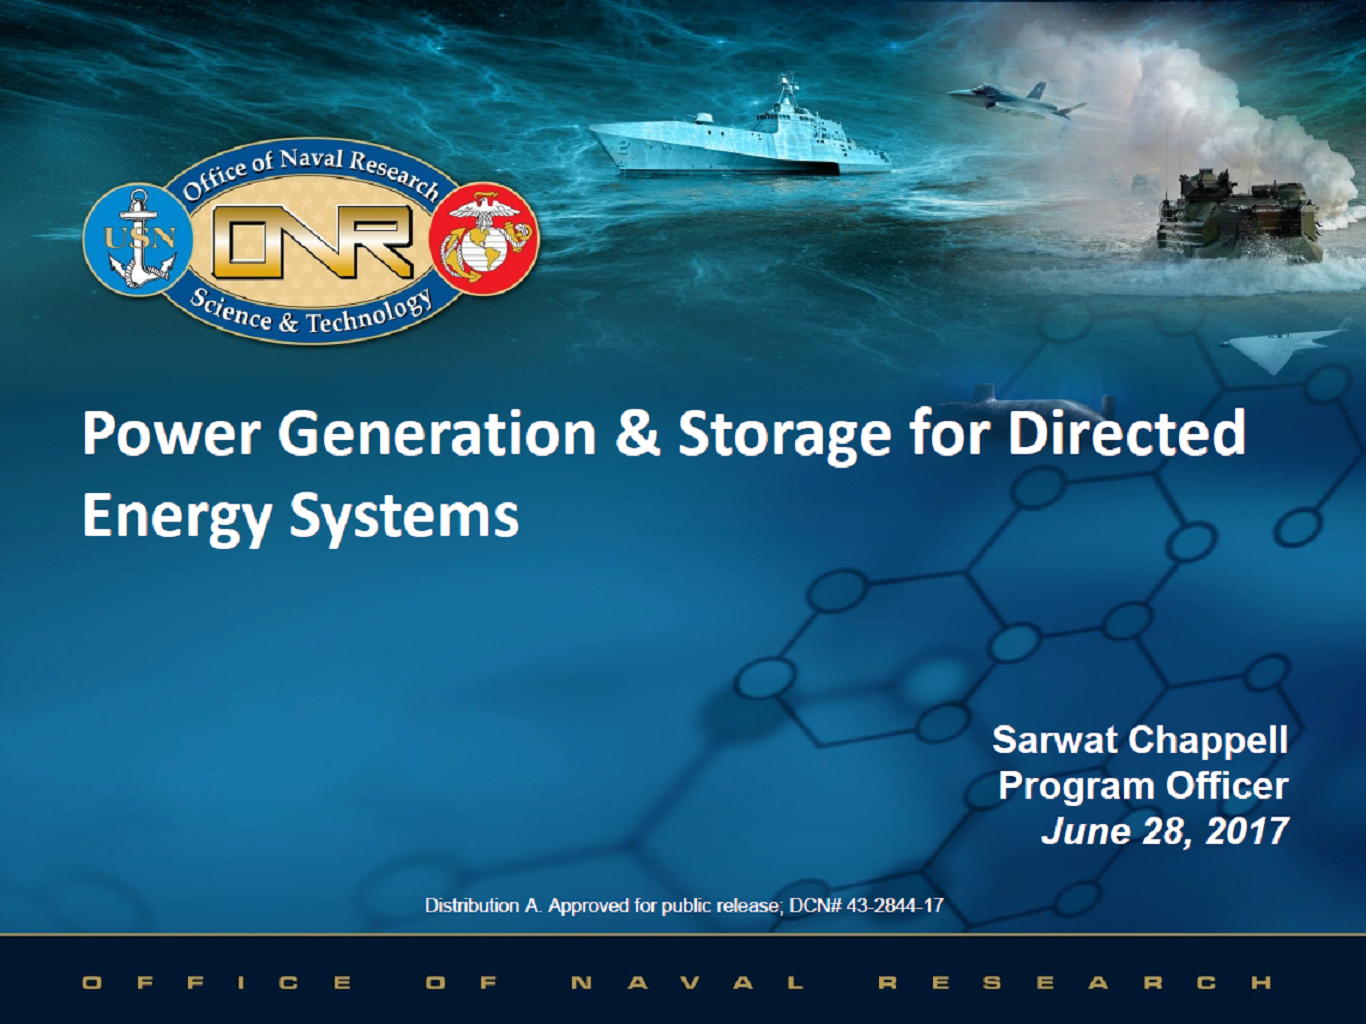 Power Generation and Storage Solutions for Directed Energy Systems